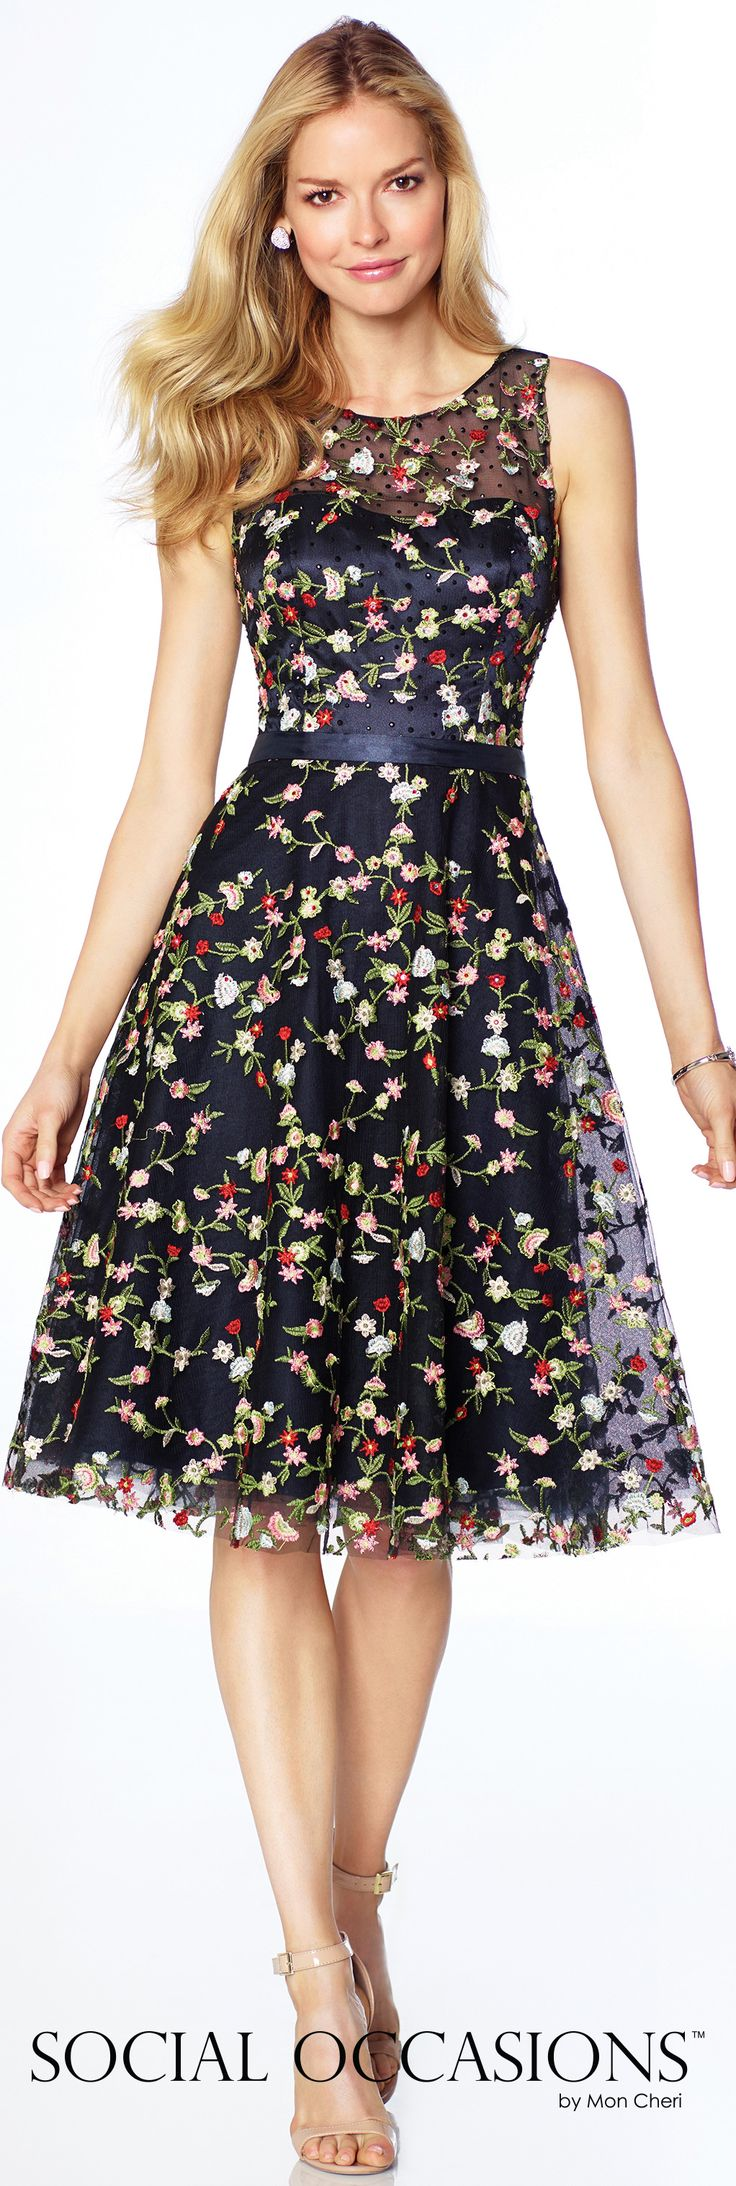 Social Occasions by Mon Cheri - 117824 - Sleeveless allover embroidered lace knee-length A-line dress with hand-beaded illusion jewel neckline and sweetheart bodice, beaded illusion back, satin belt at natural waistline.Sizes: 4 – 20Colors: Navy Blue/Multi, Ivory/Multi